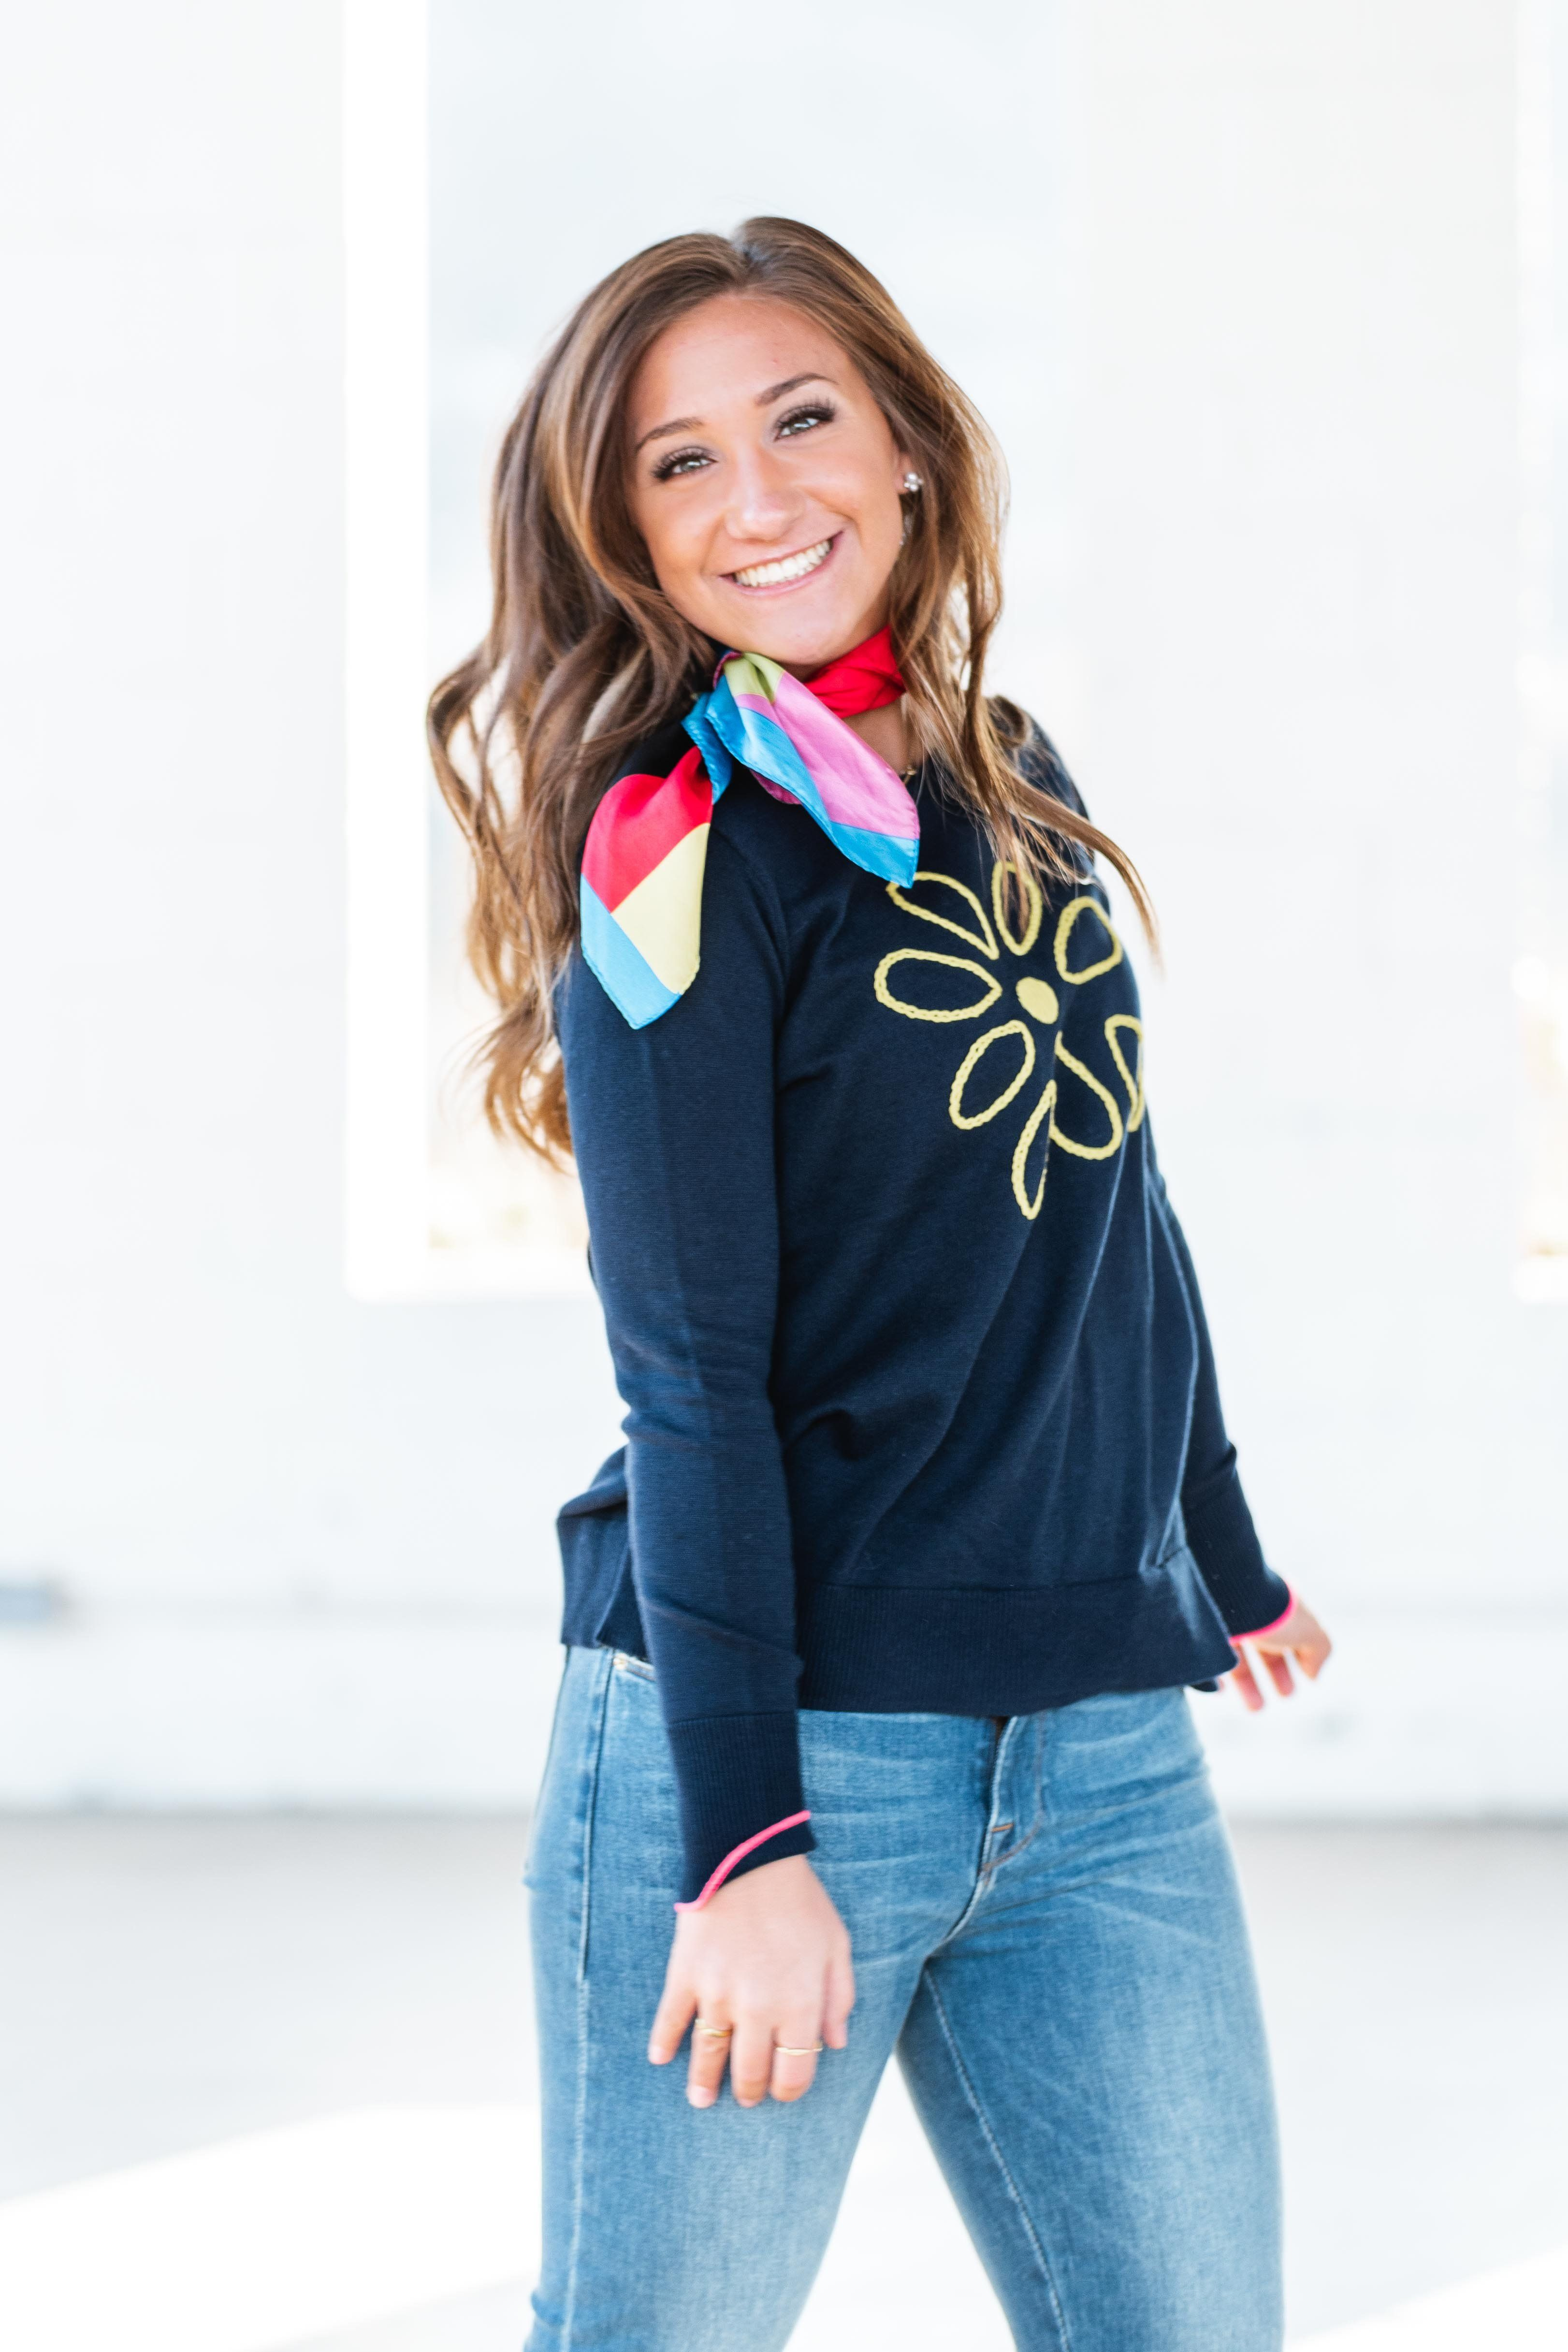 a08bb25d37962 Lisa todd love me navy sweater in 2019 | Products | Navy sweaters ...